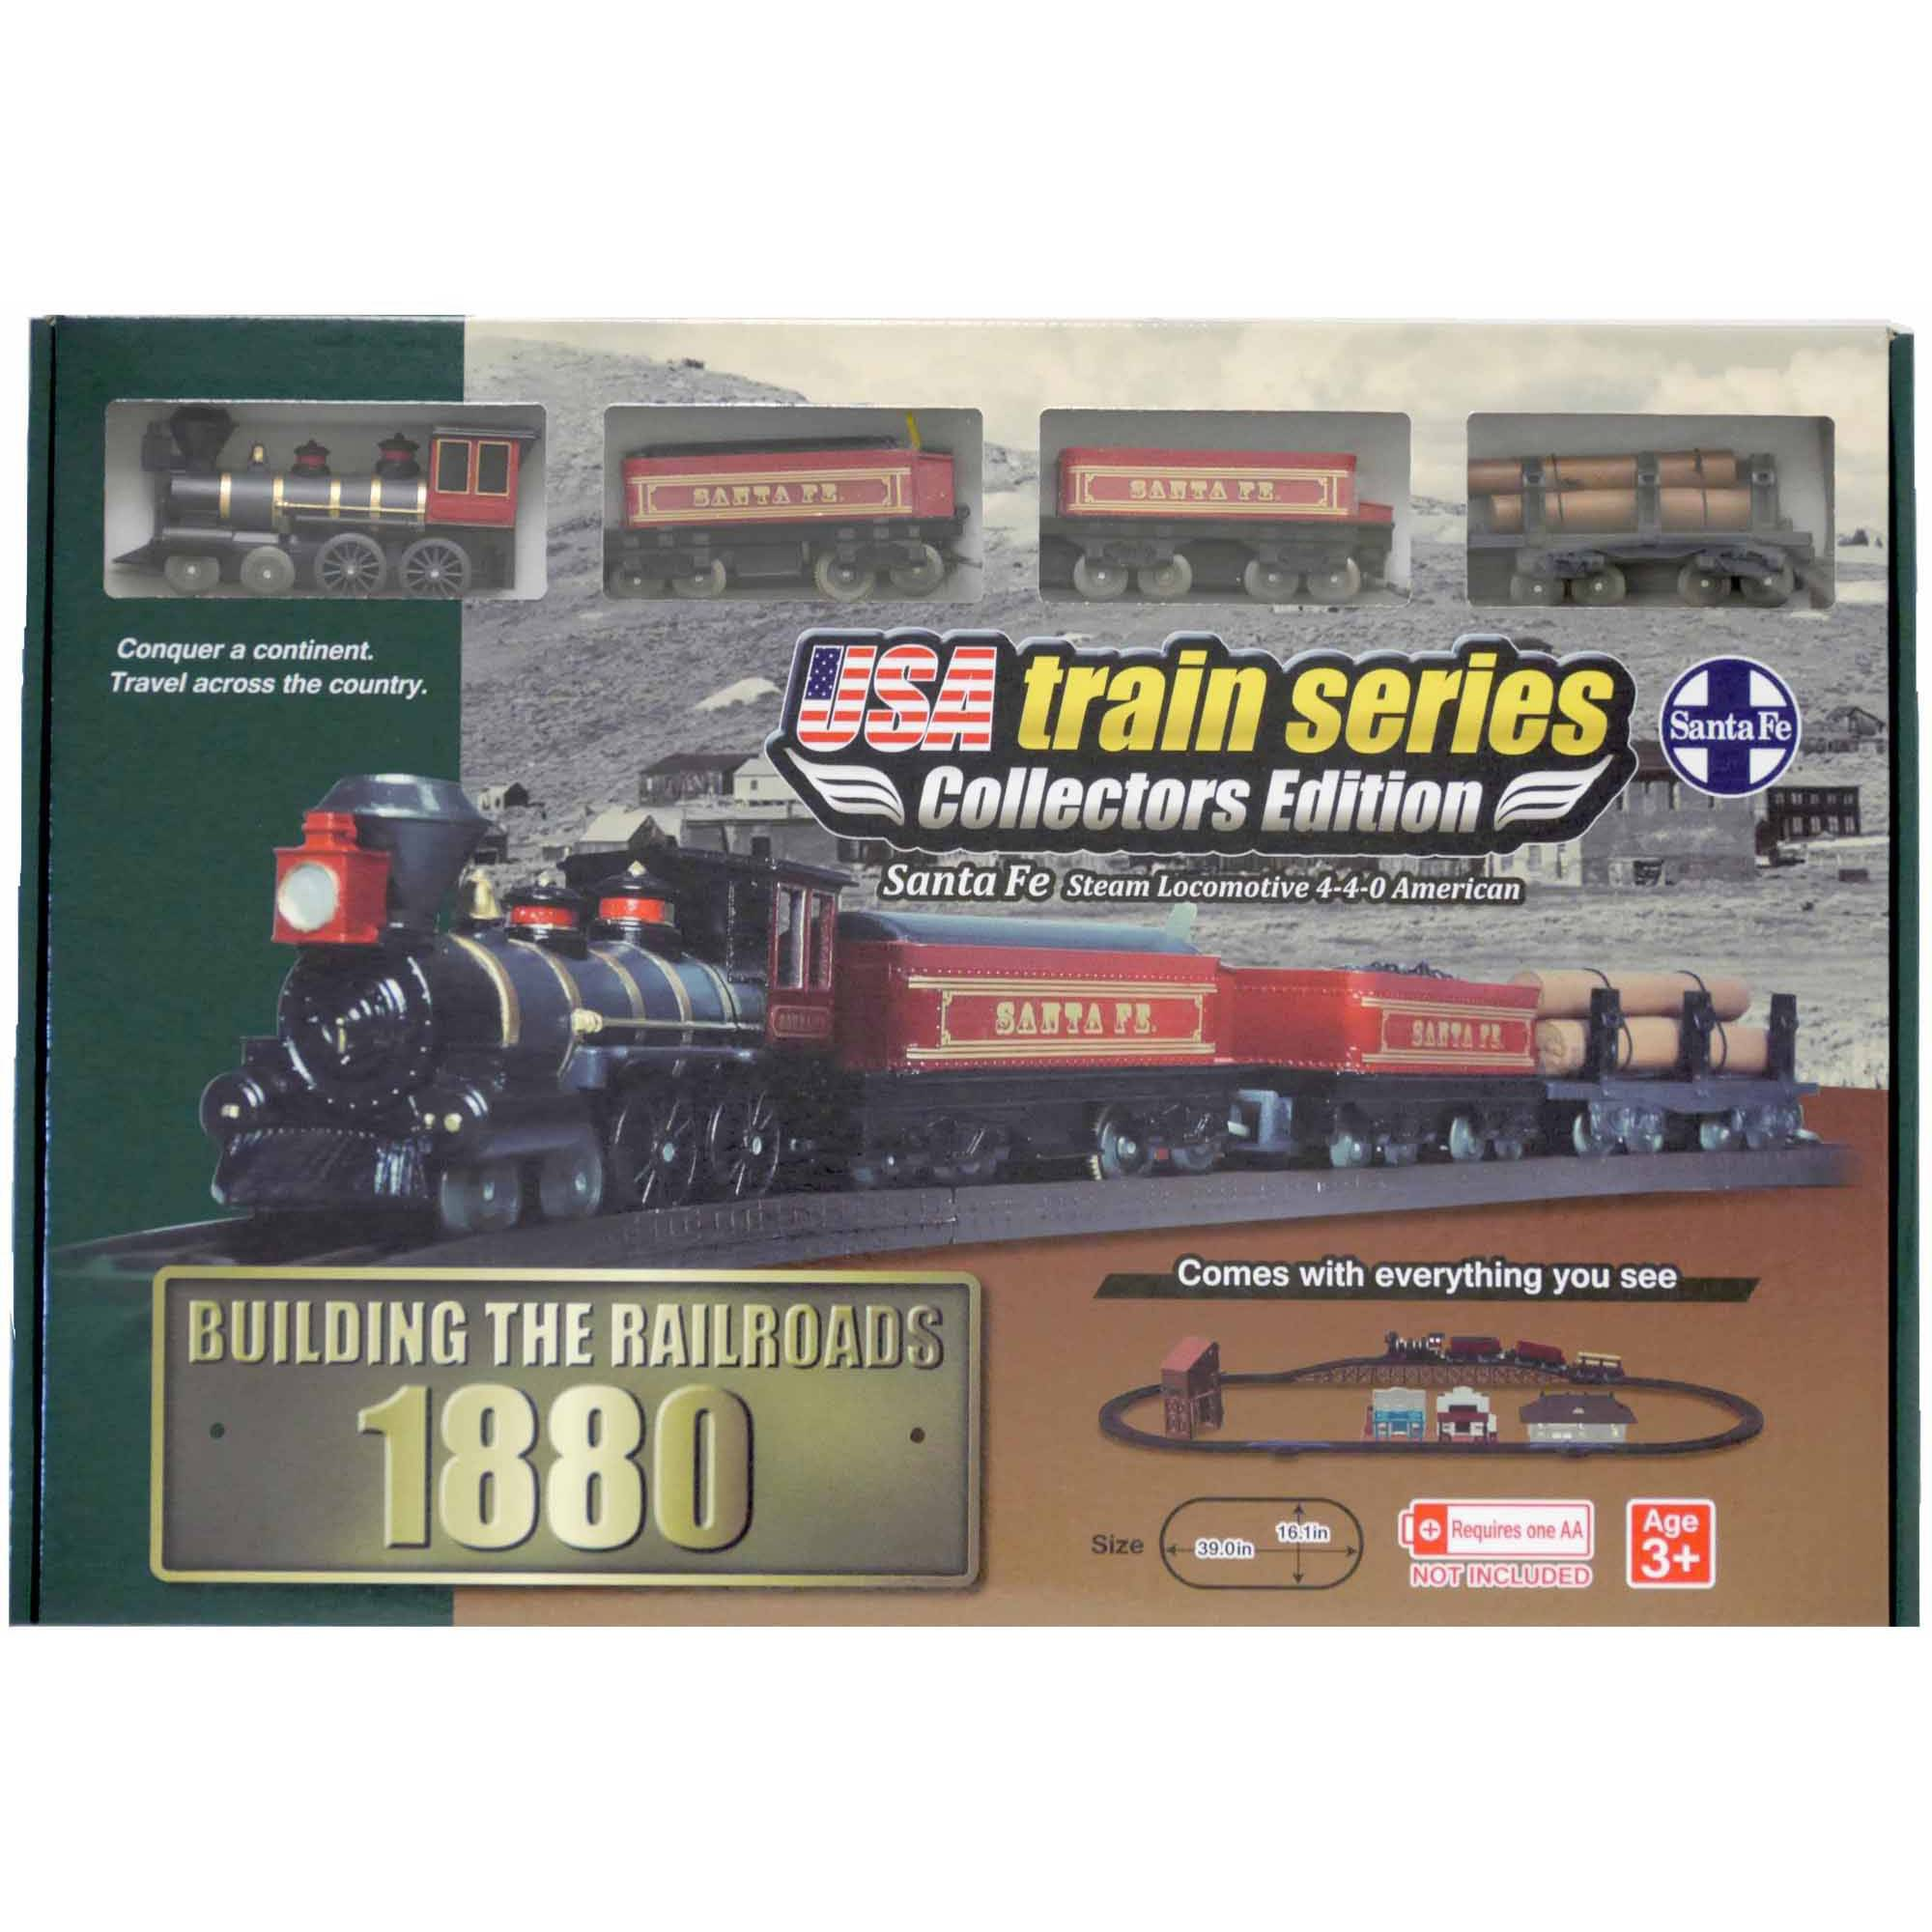 Merveilleux LEC USA 1880 Santa Fe Steam Locomotive 4 4 0 American Battery Operated Train